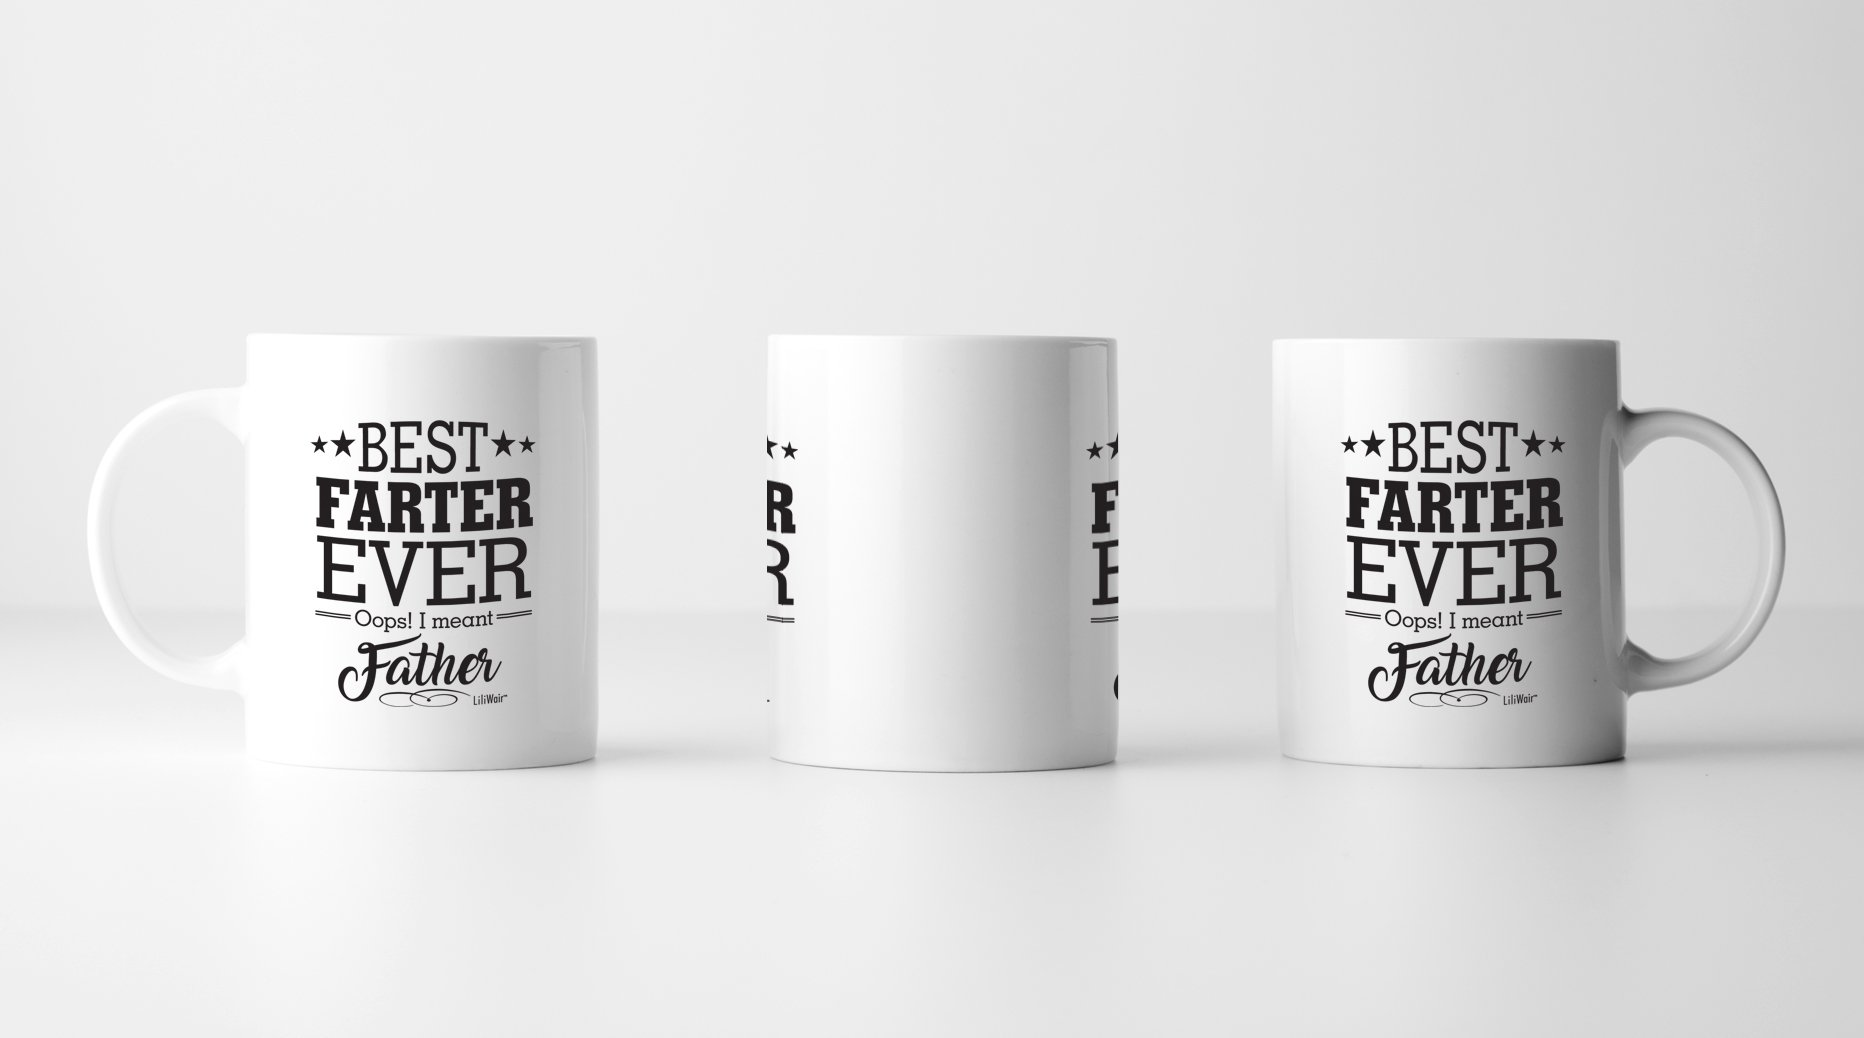 Dad Gifts From Daughter Son Birthday Gift Coffee Mug Worlds Best Farter I Mean Father Cool Happy Funny Christmas Mugs Top Dads